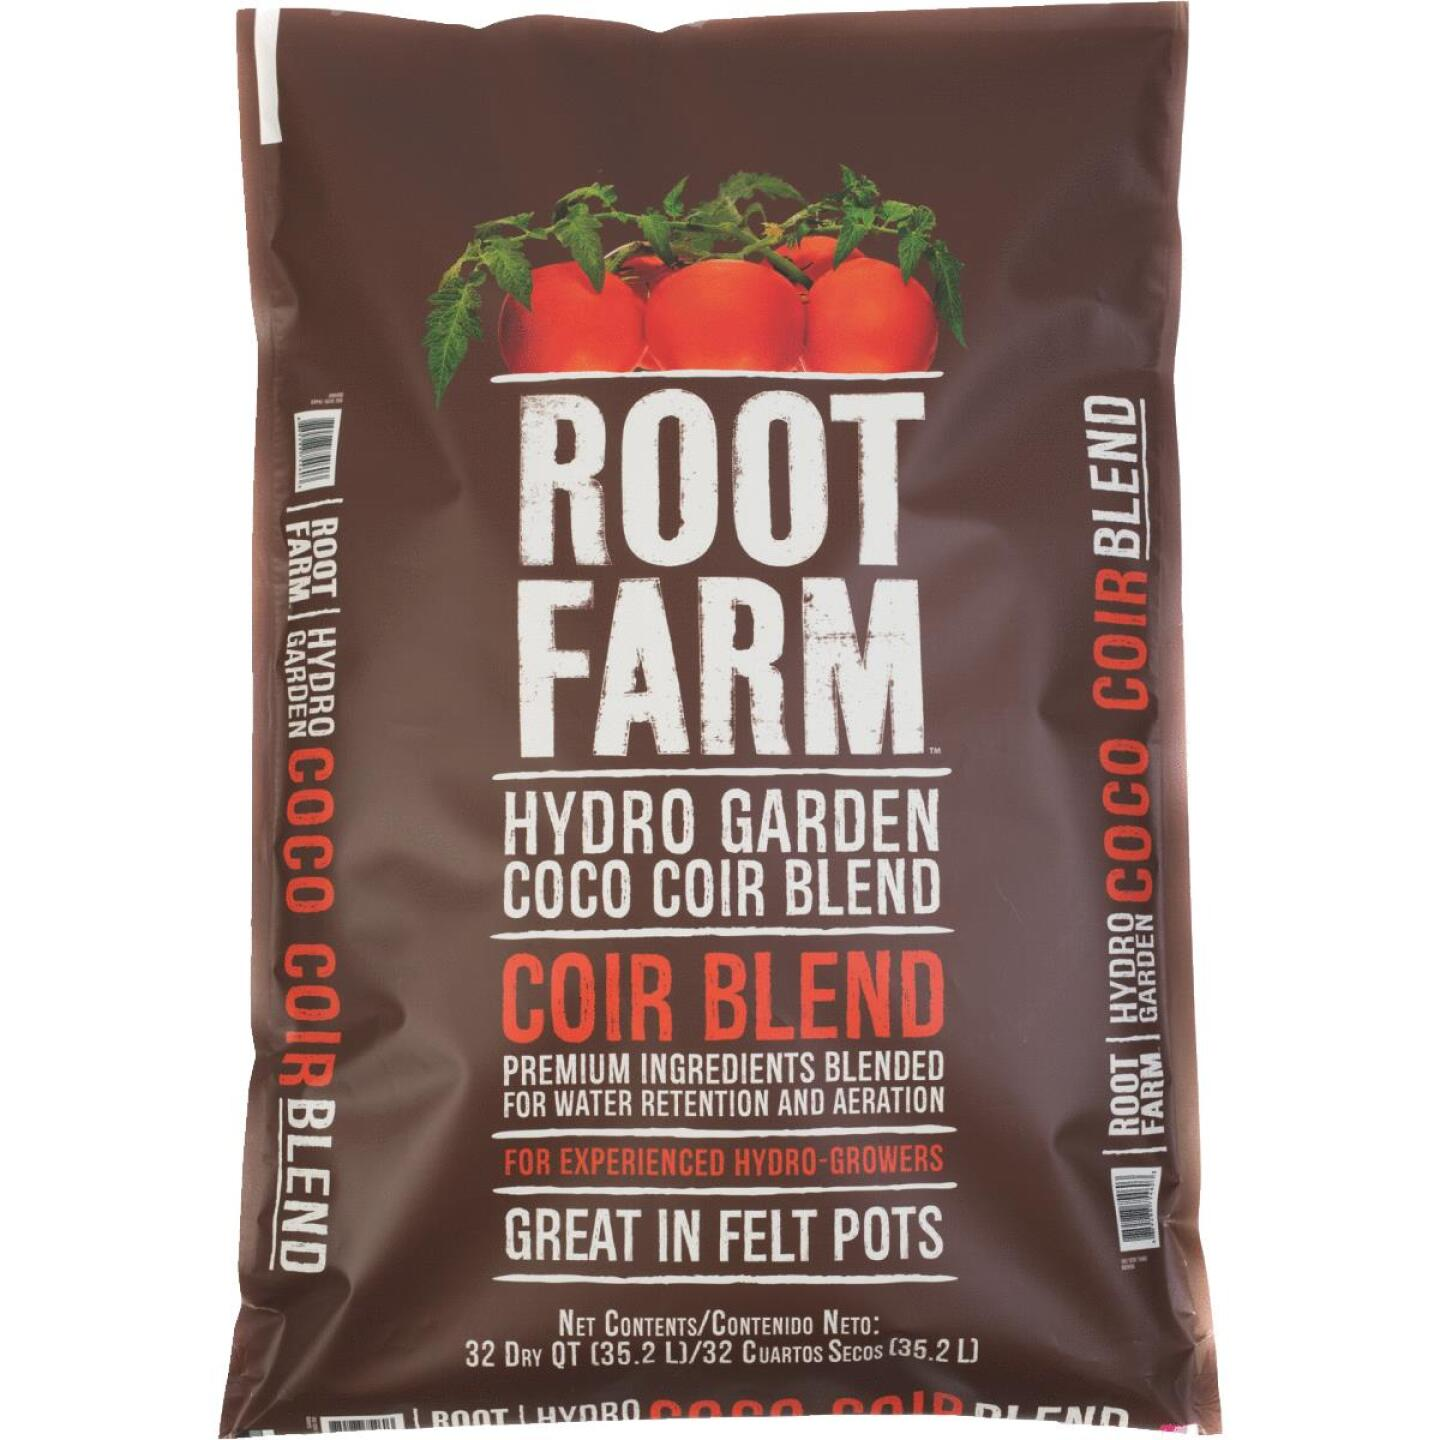 Root Farm 32 Qt. Hydroponic Growing Medium Coco Coir Blend Image 1